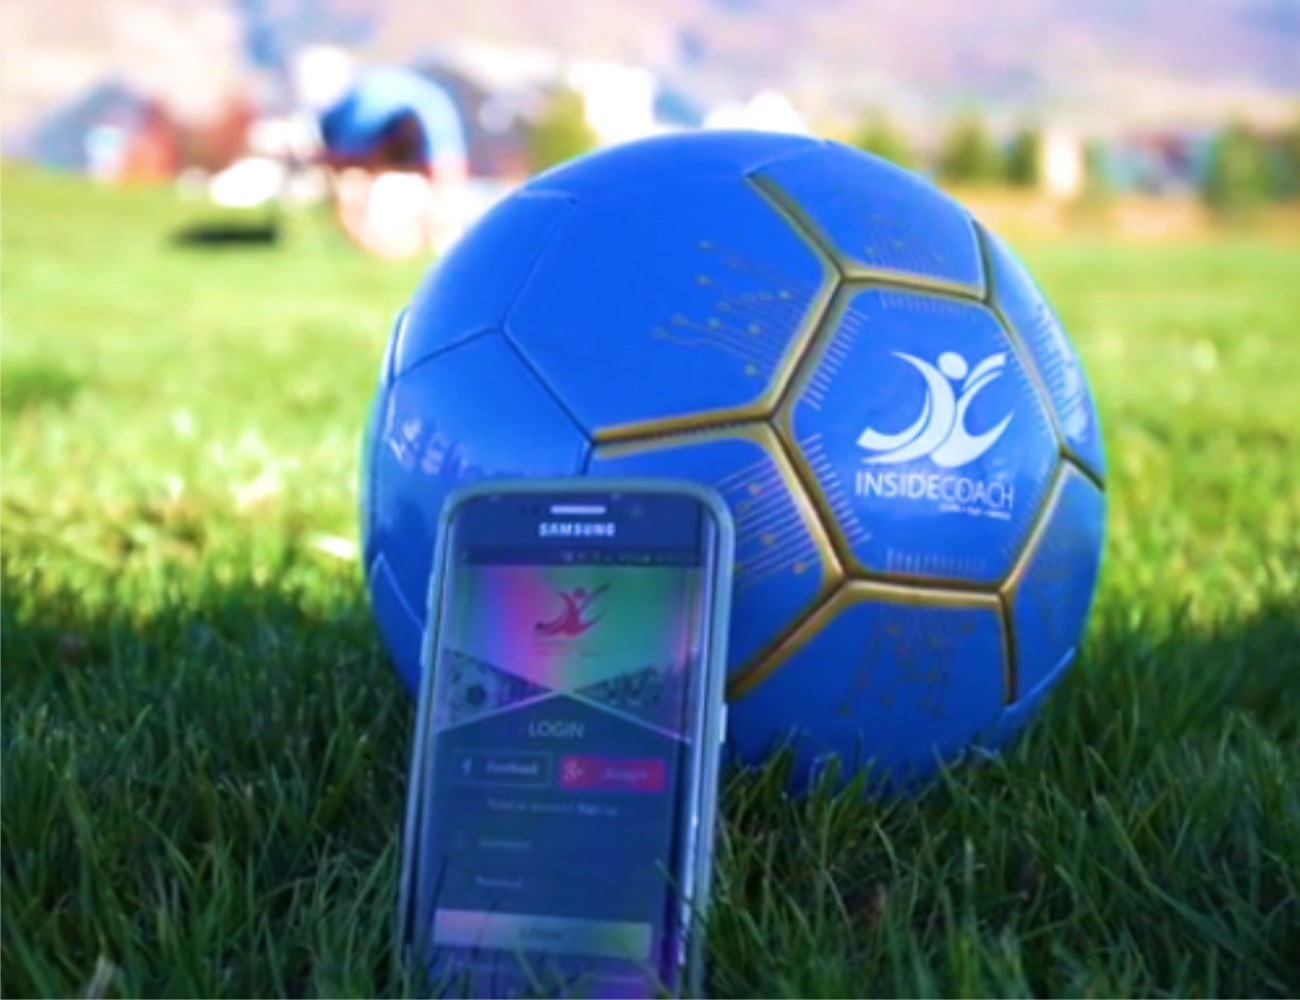 insidecoach-connected-smart-soccer-ball-06